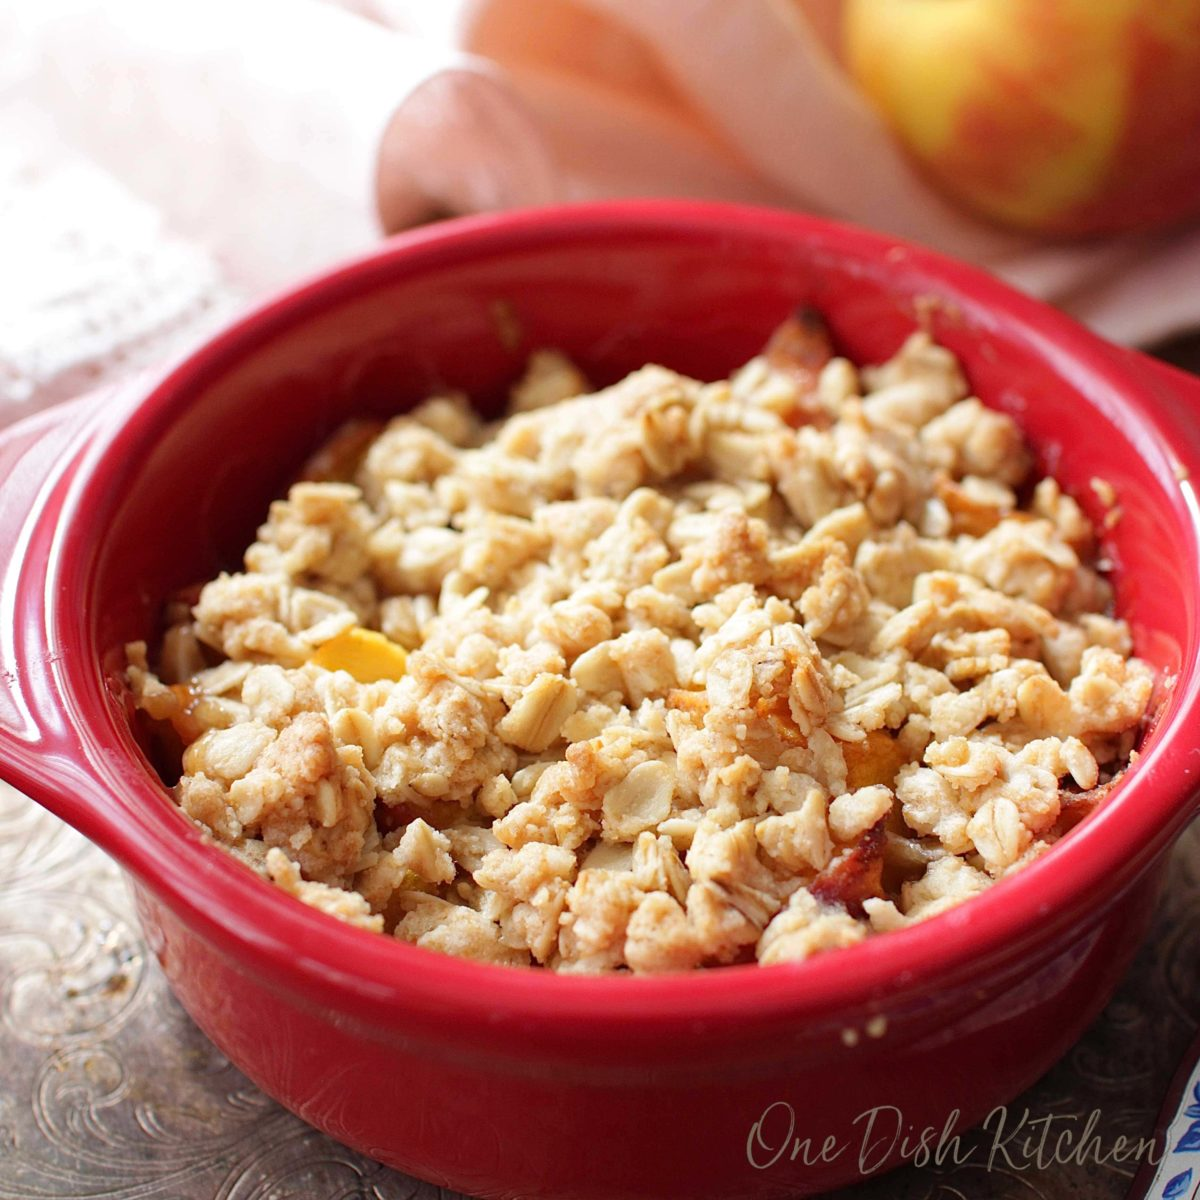 a peach crisp with an oatmeal topping in a red bowl on a tray.